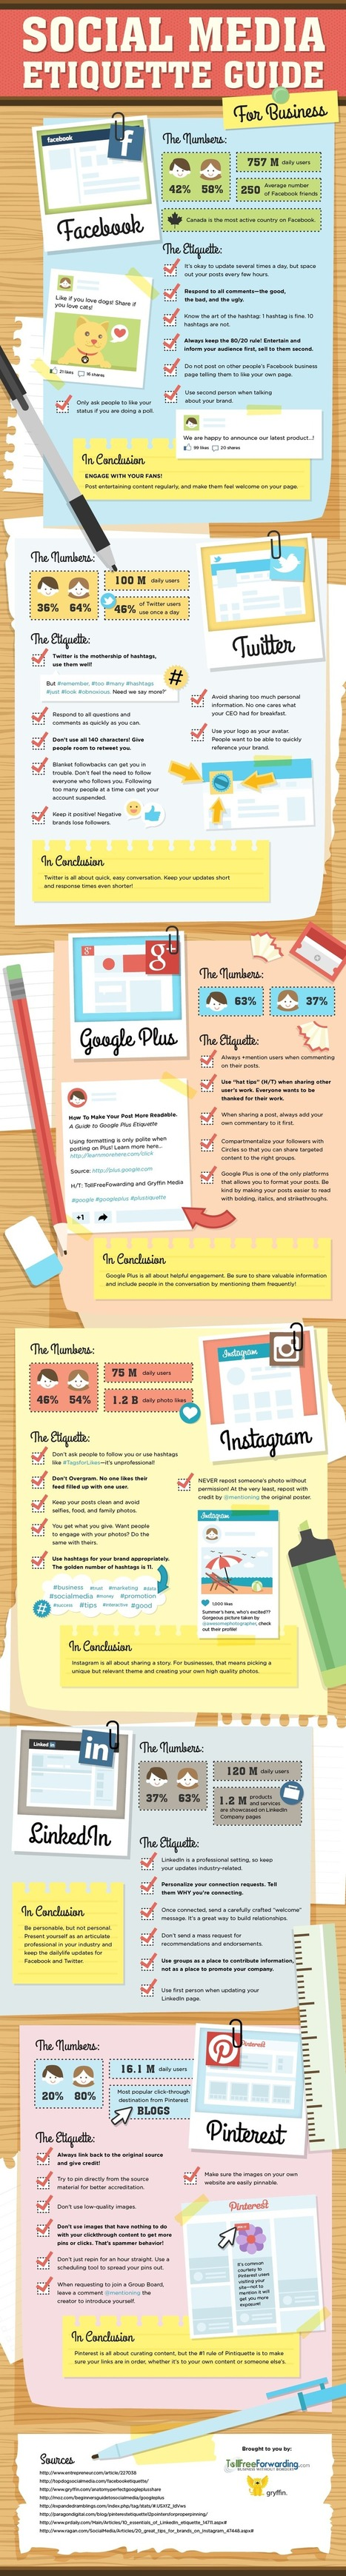 Infographic: The Social Media Etiquette Guide to Business | SM | Scoop.it